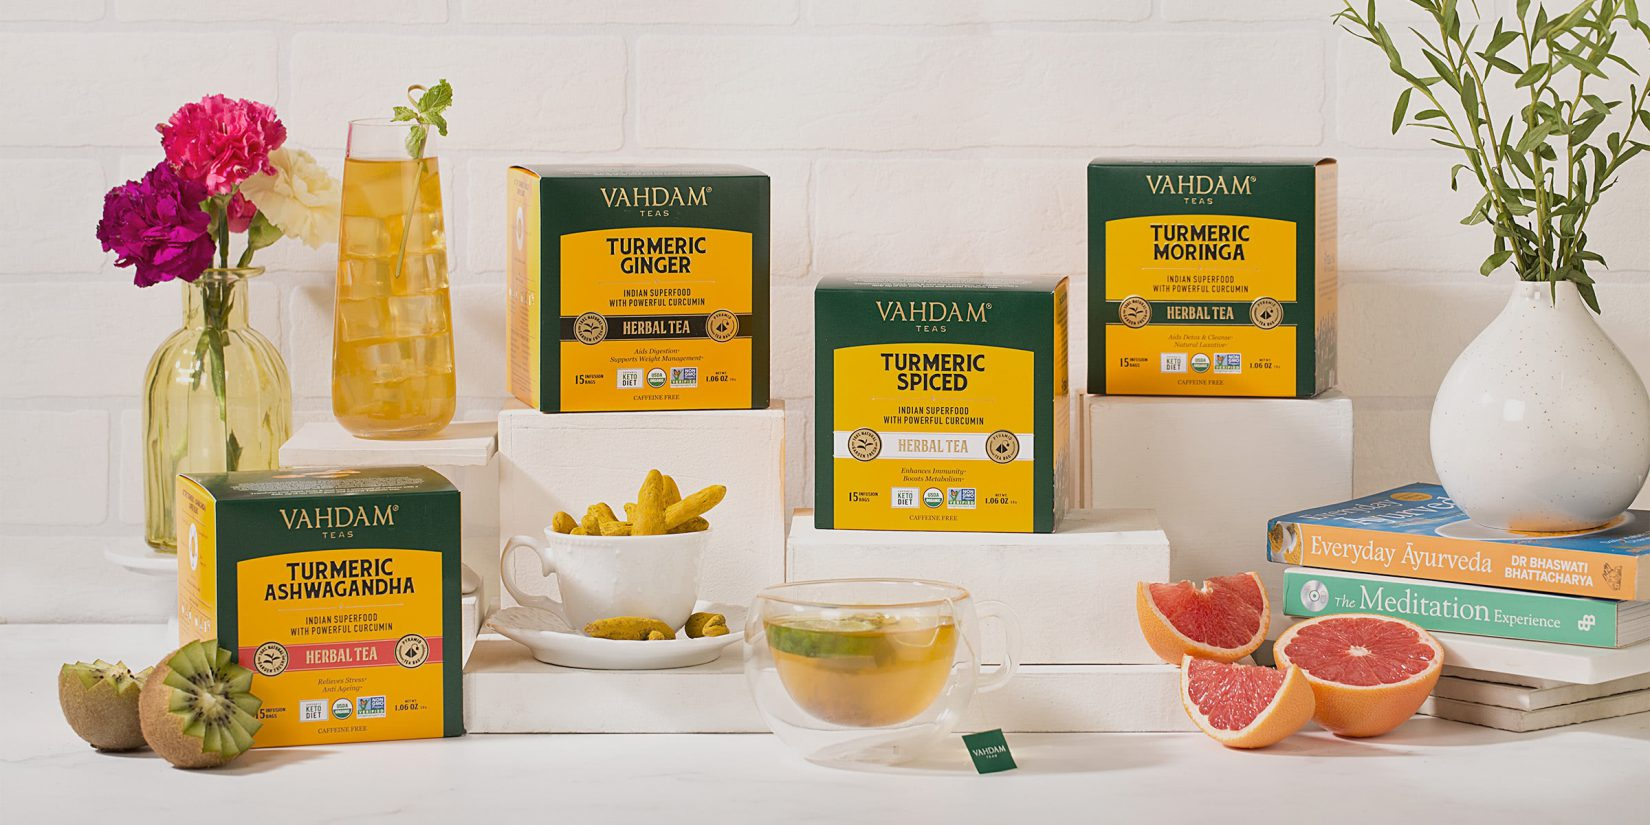 Top Picks From VAHDAM India: Best Of Wellness Teas With A Purpose